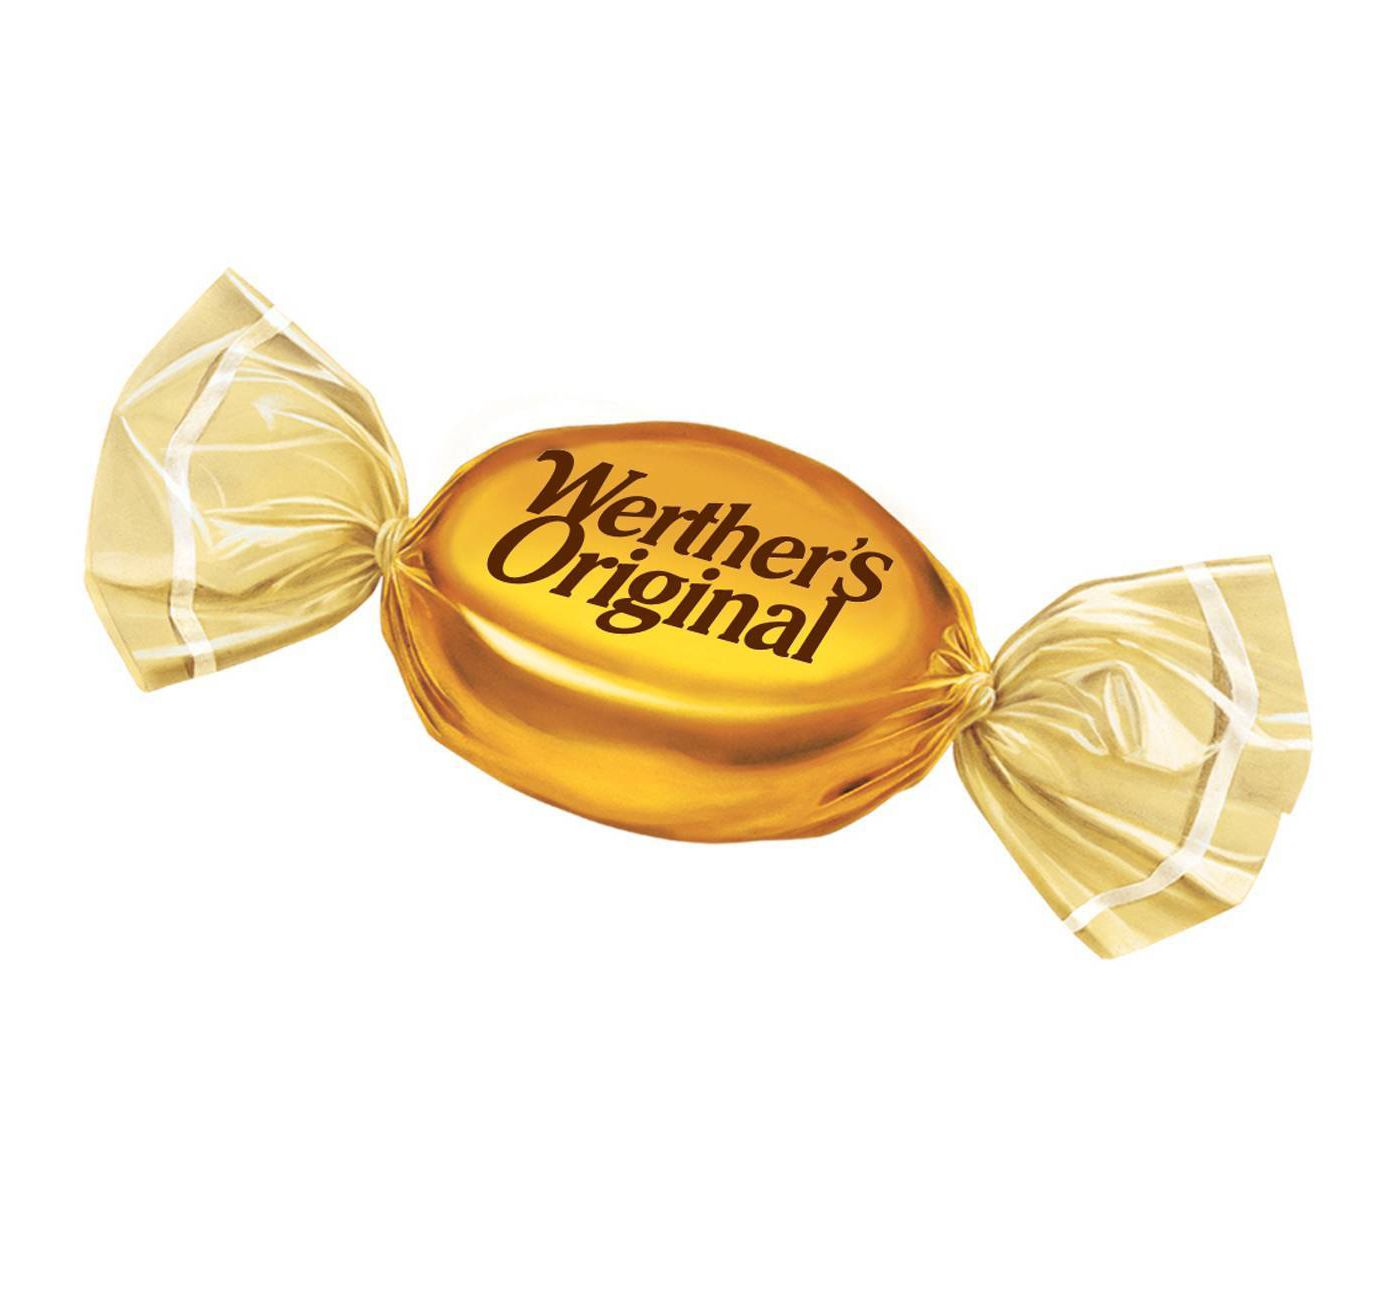 Werther's Original Caramel Hard Candies, 12 oz